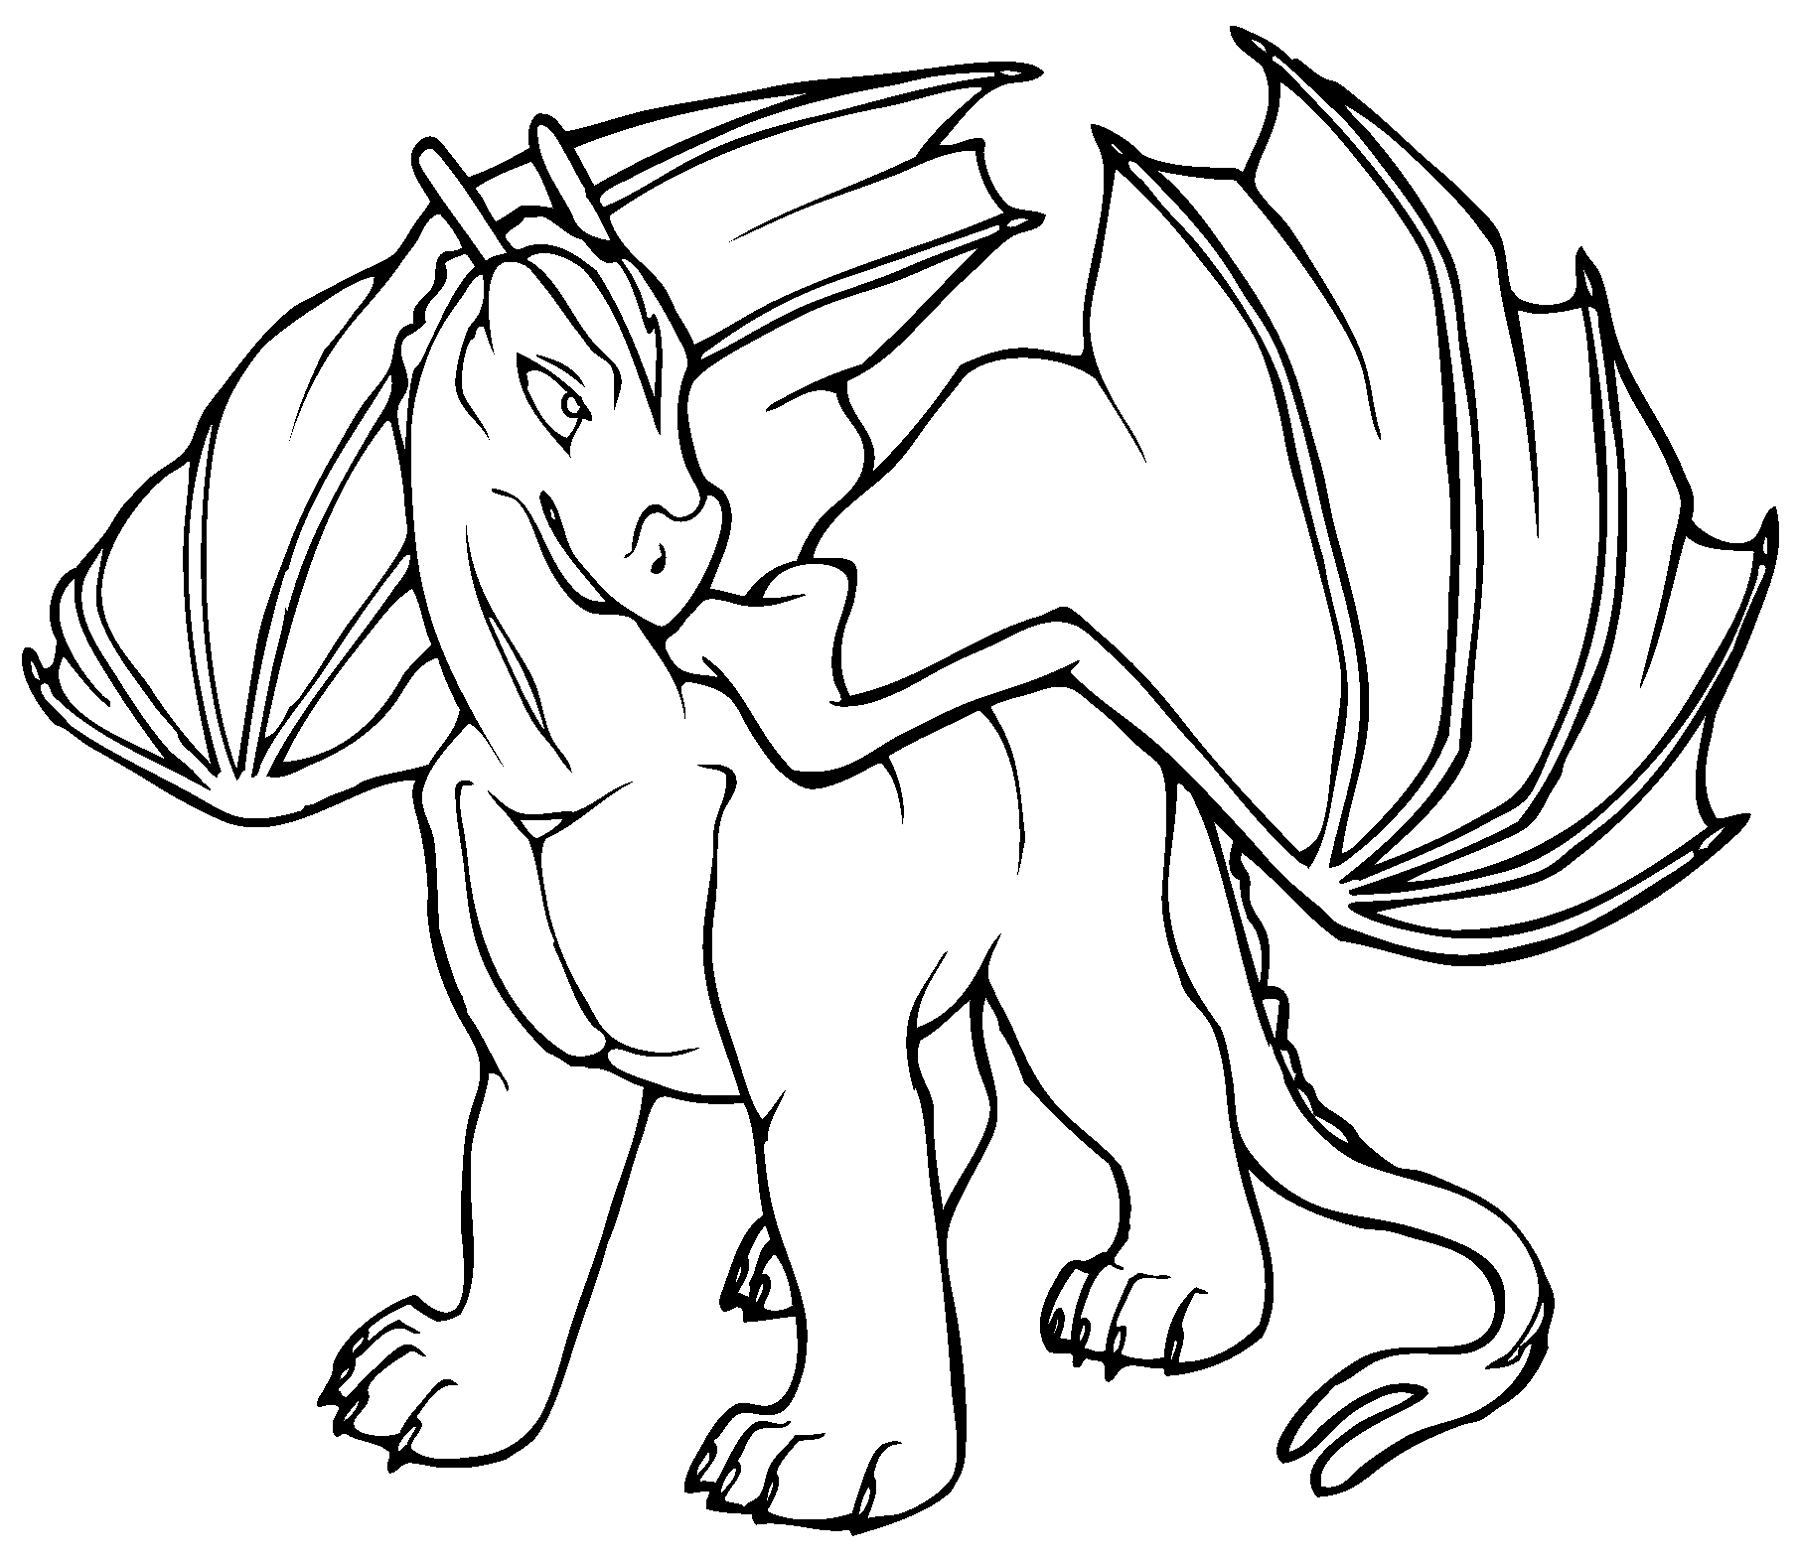 dragon printable dragon coloring pages for adults best coloring pages for dragon printable